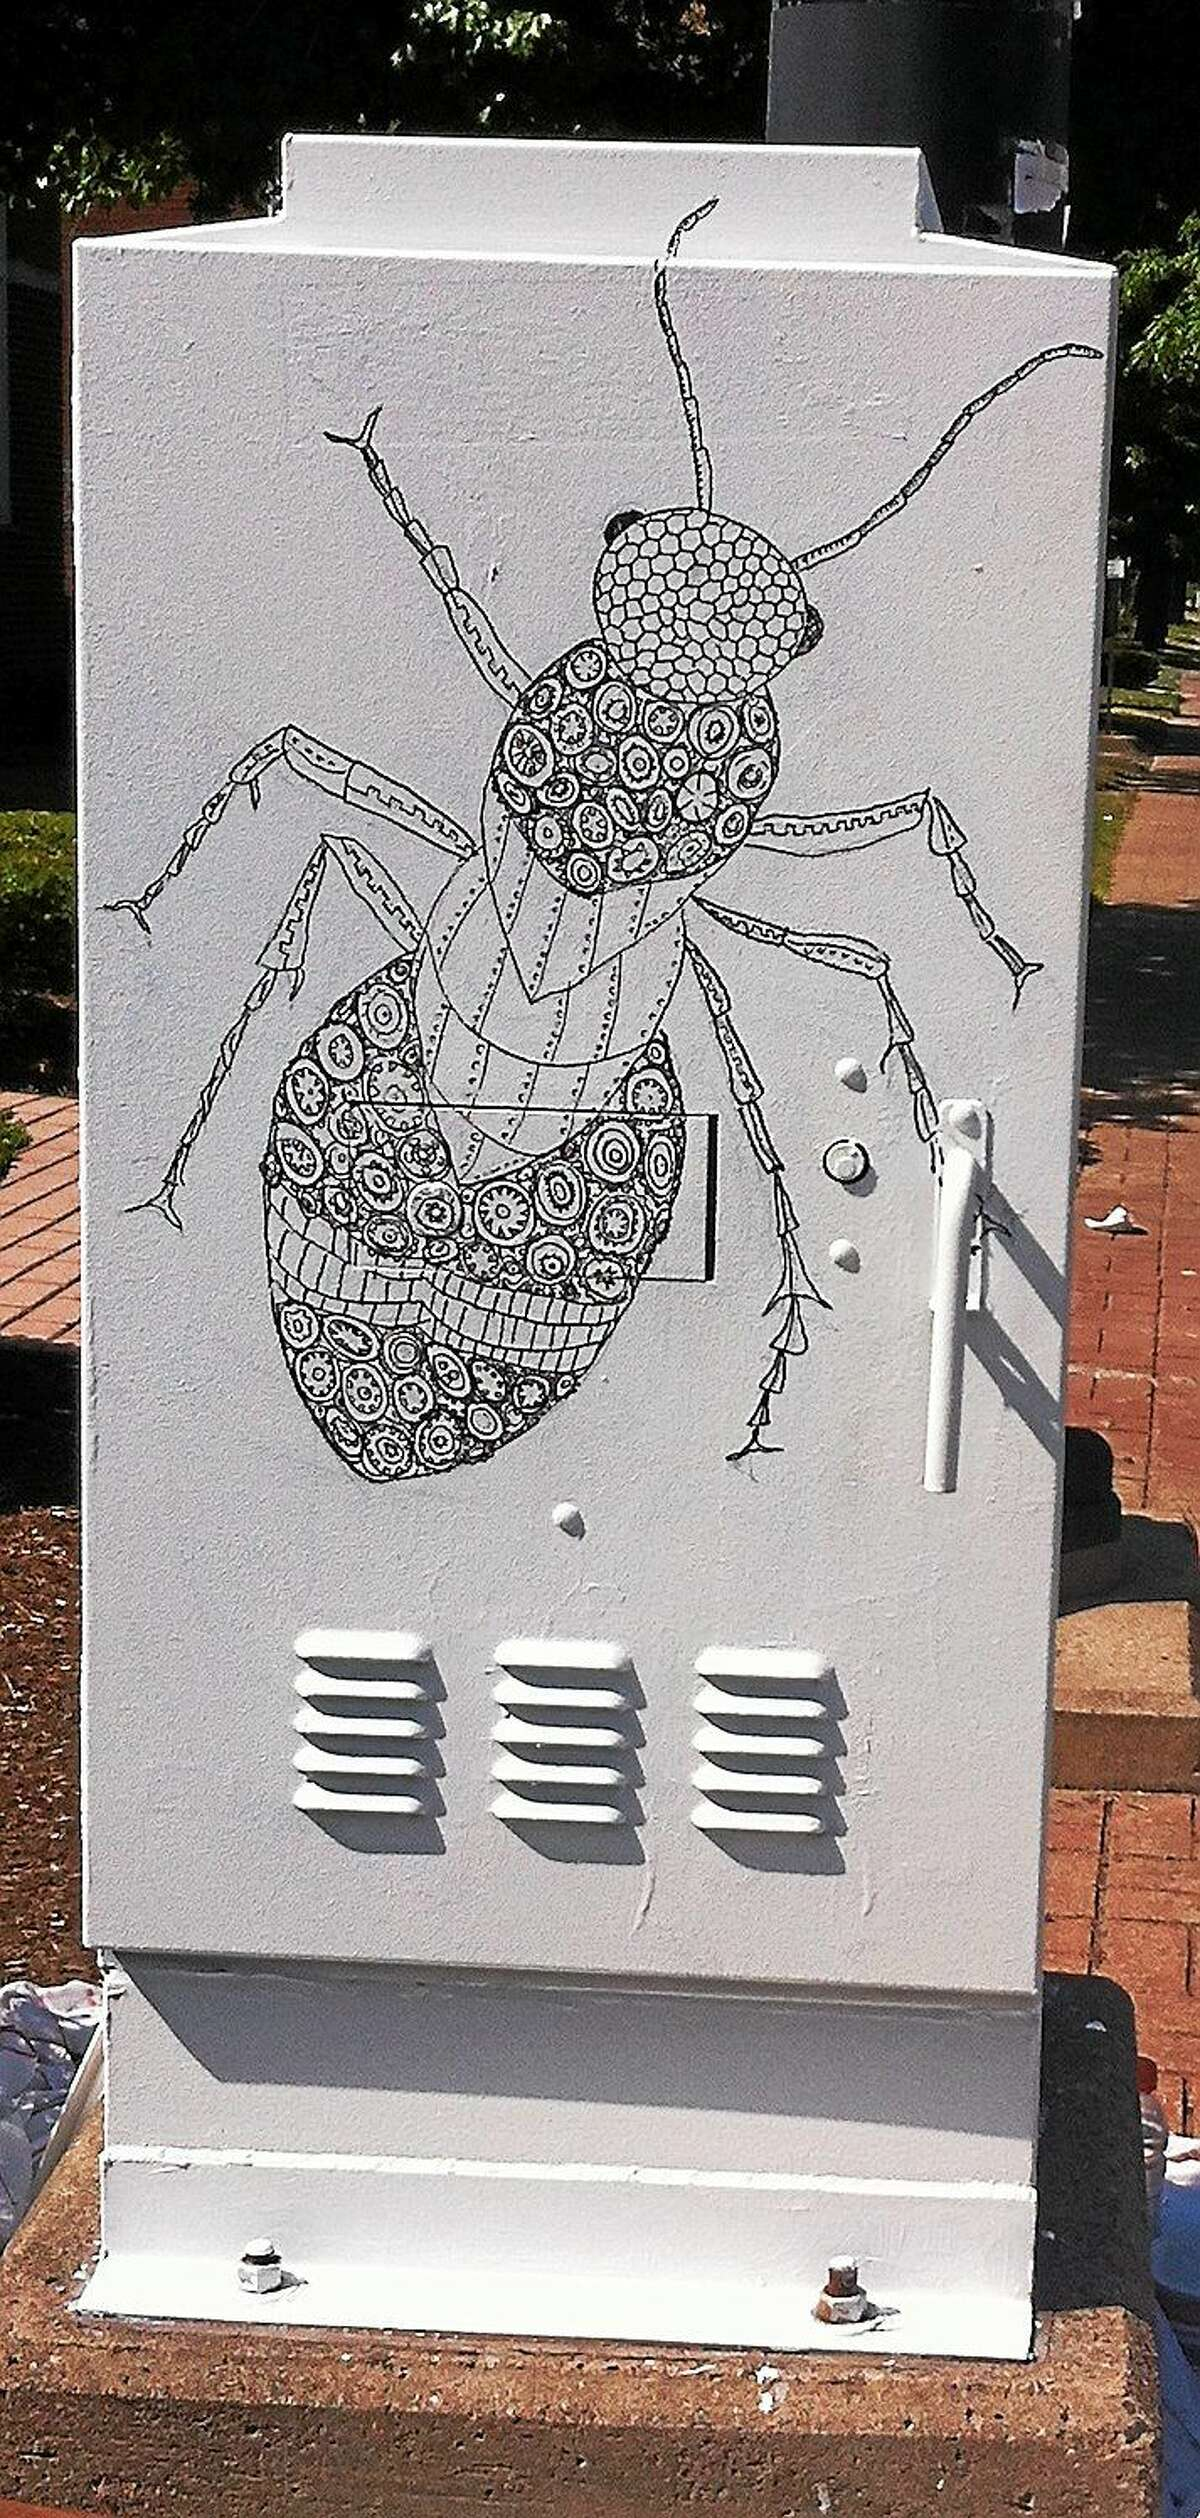 Katharine Owens was one of 16 artists to receive a grant from the City of Hartford as a part of the city's Outside the Box project designed to discourage graffiti by giving artists a platform to create their own street art on city utility boxes.